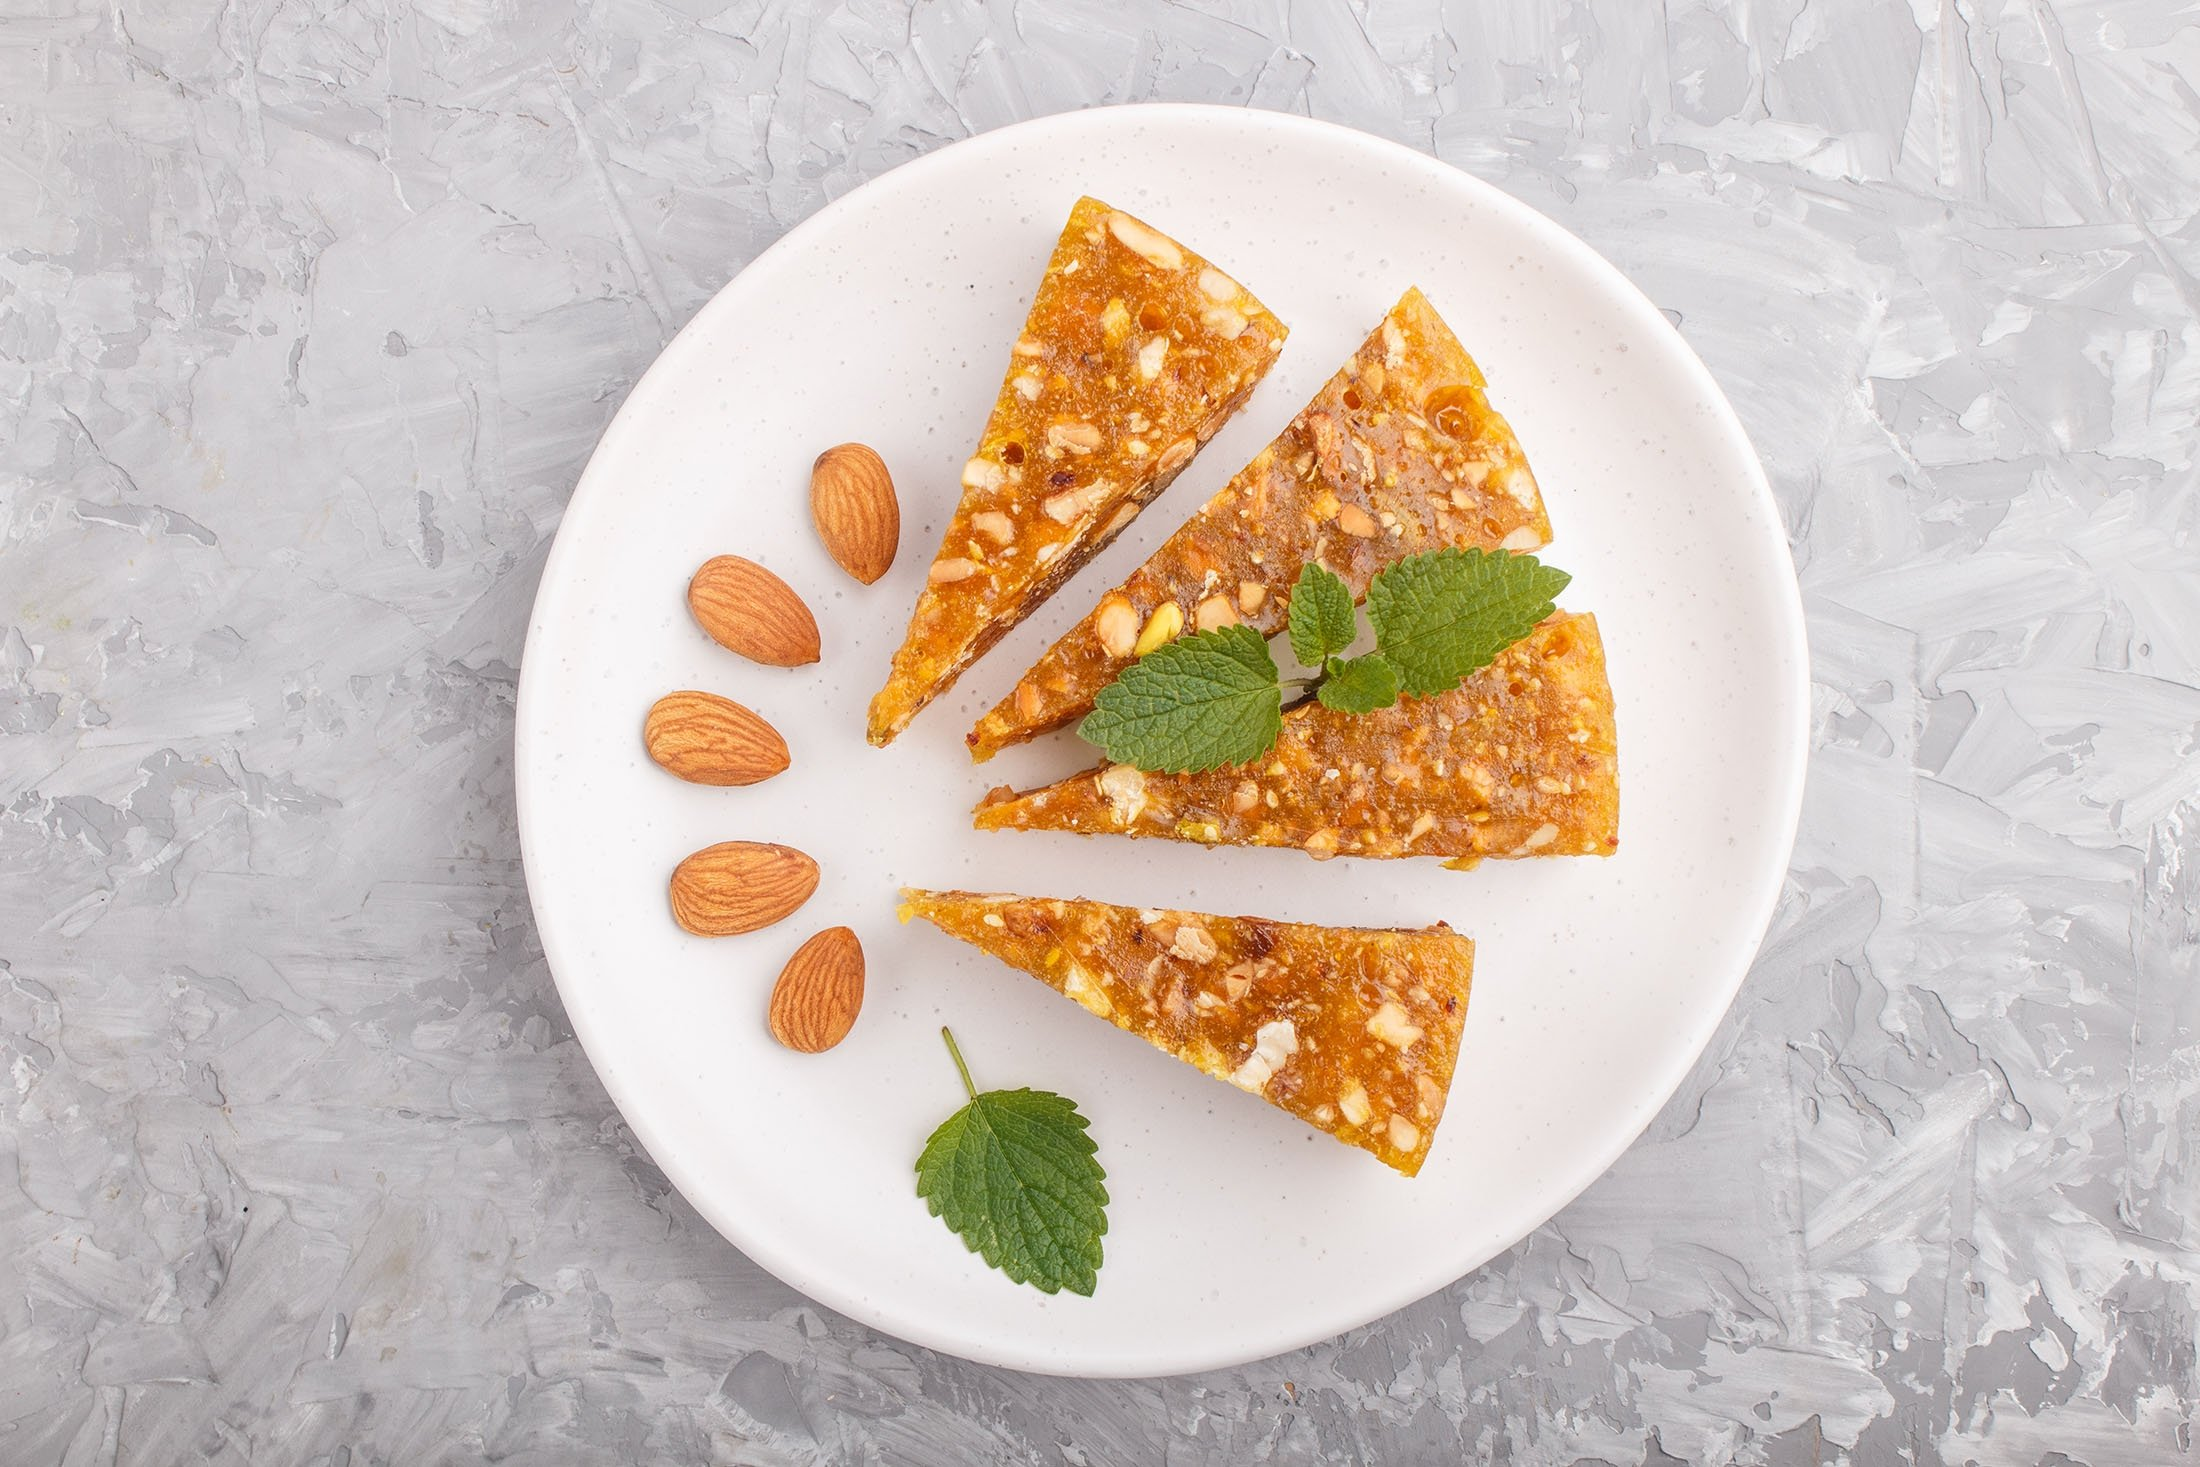 Cezerye is made from caramelized carrots, shredded coconut and roasted nuts. (Shutterstock Photo)